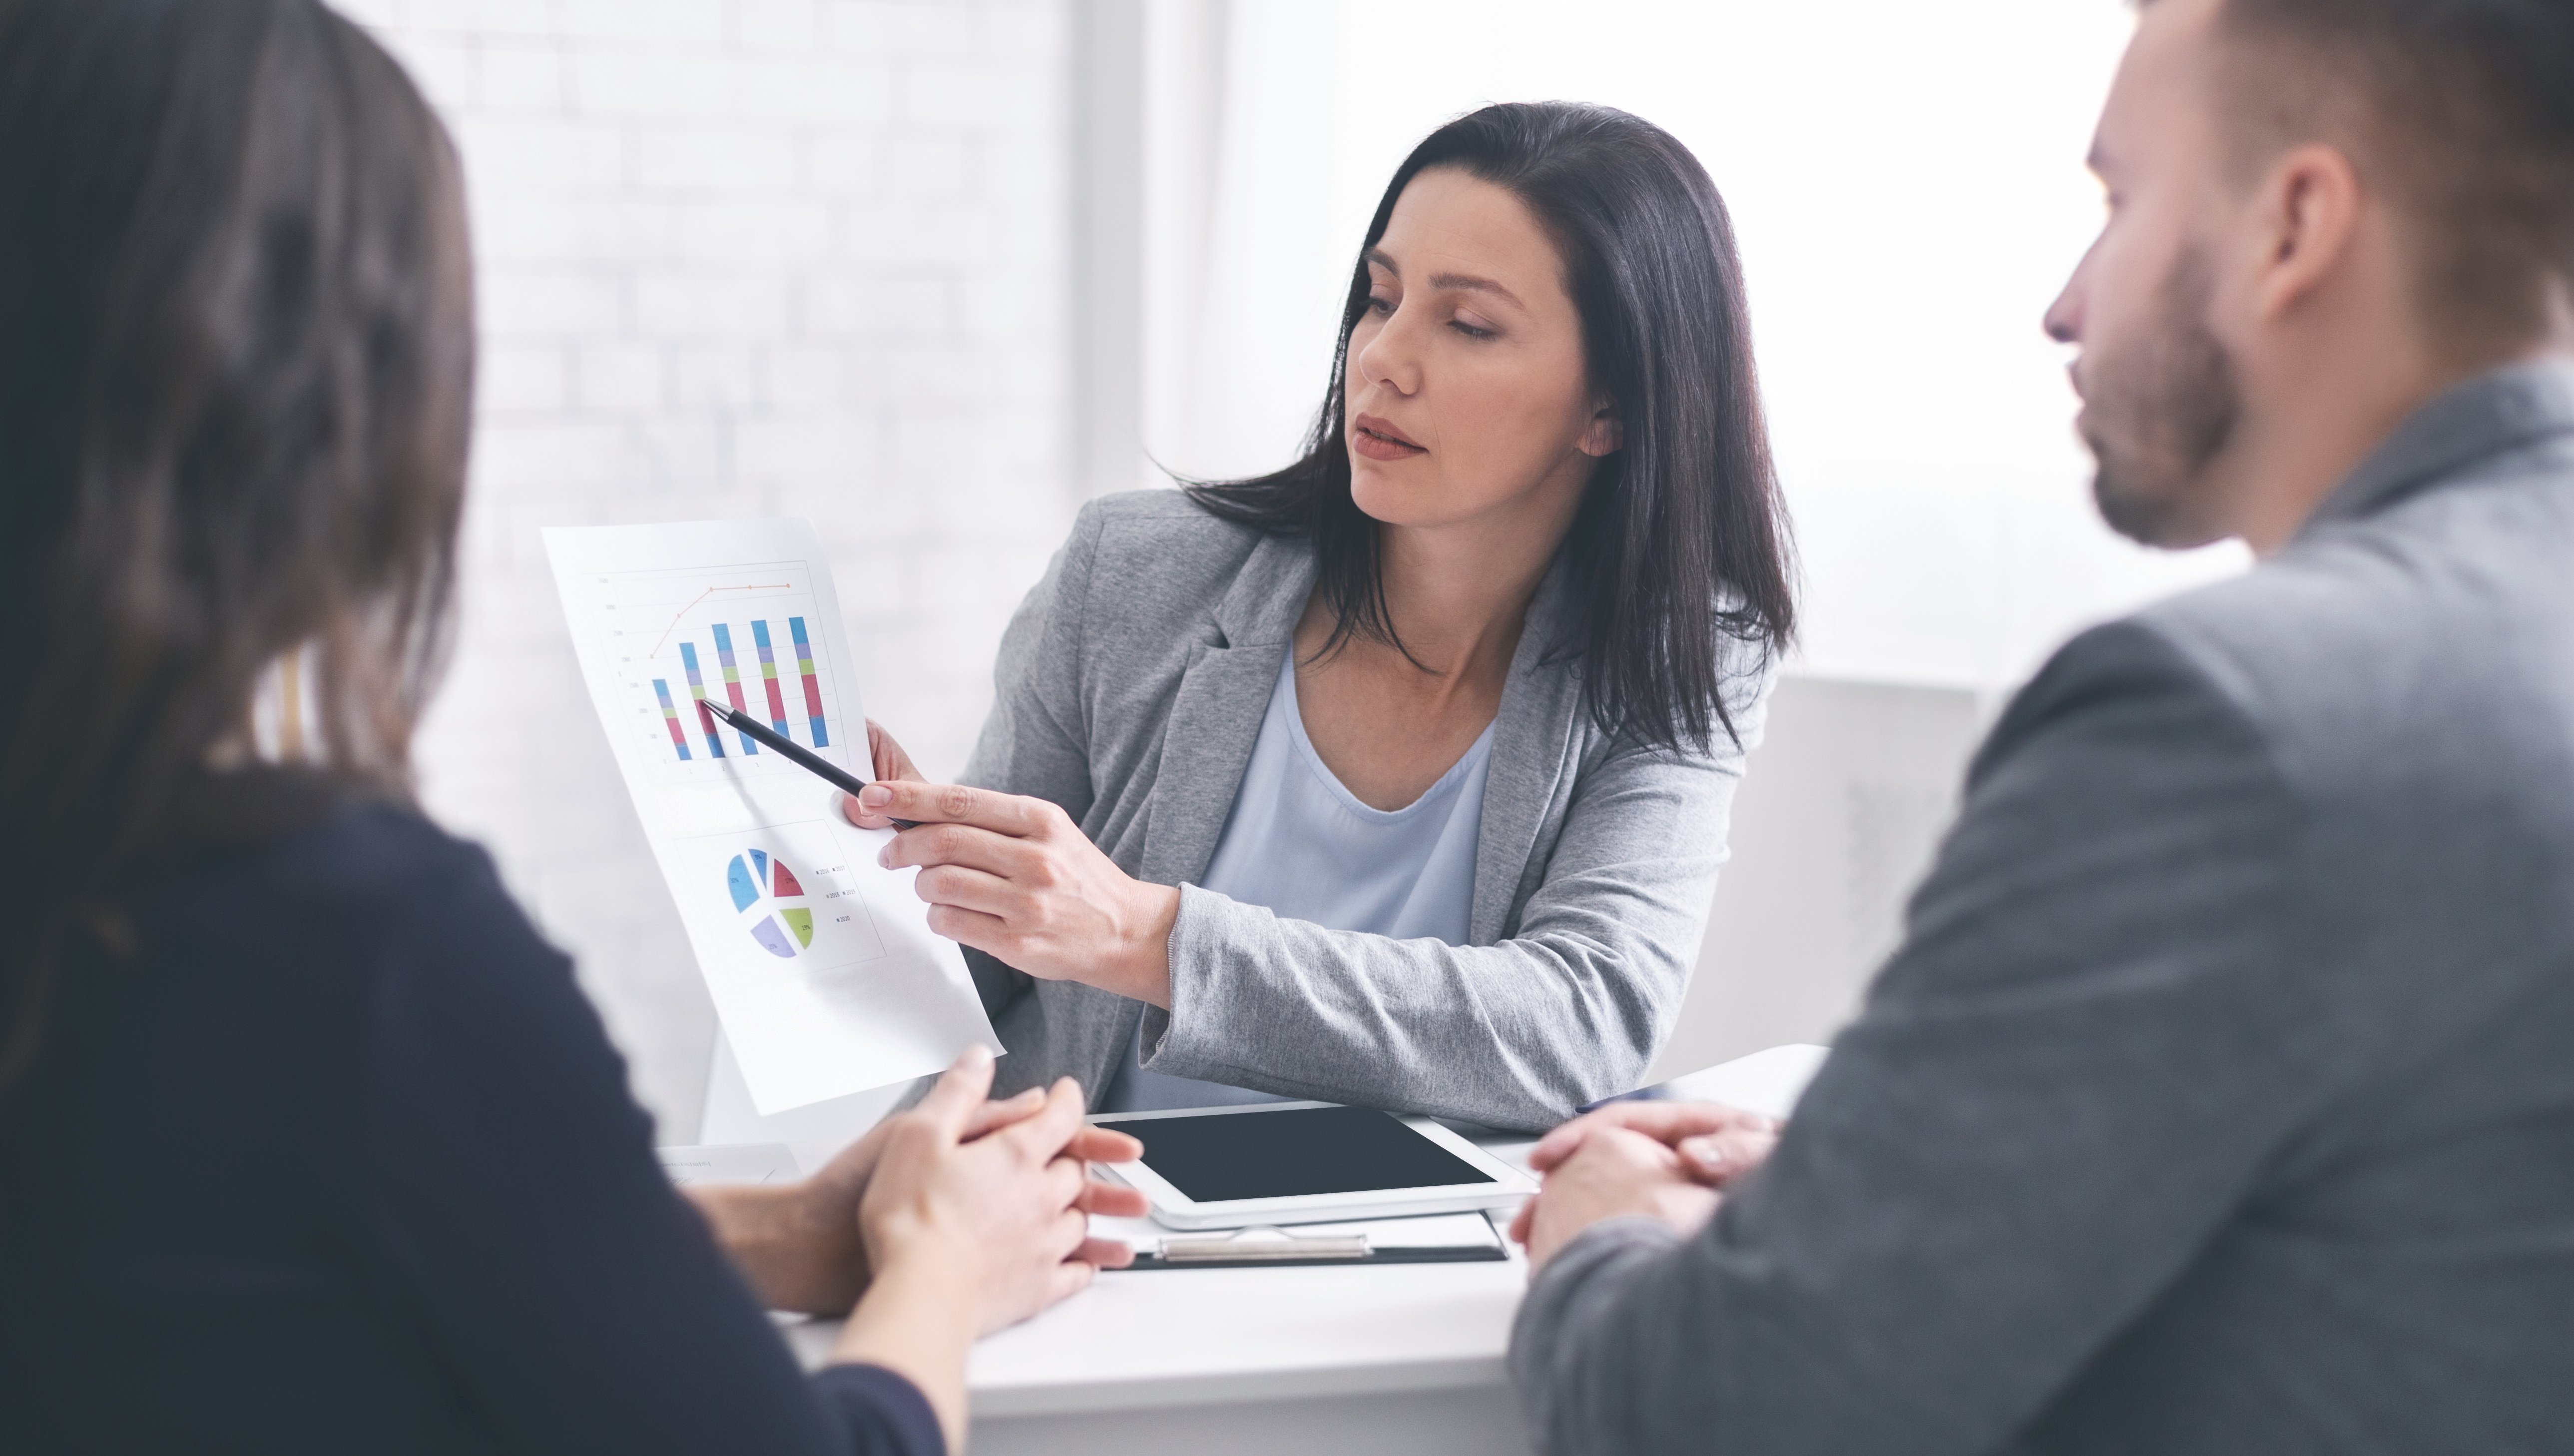 Fiduciary Vs. Suitability Standards: What's The Difference?